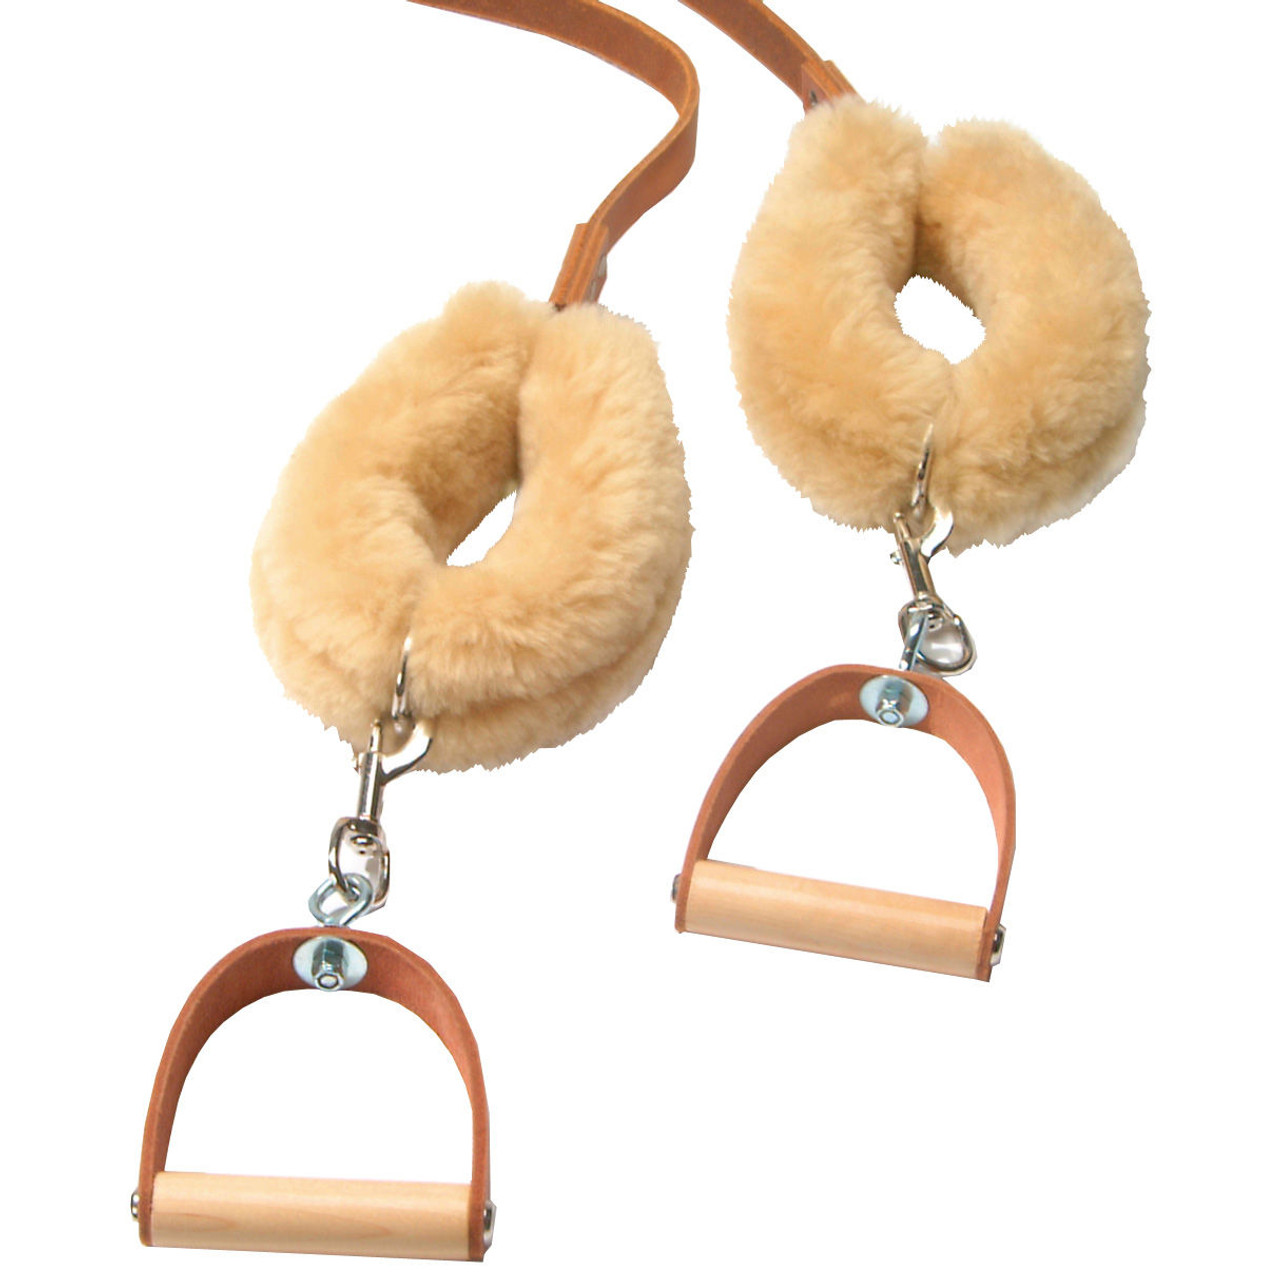 Leather Strap Covers, Sheepskin (pair)